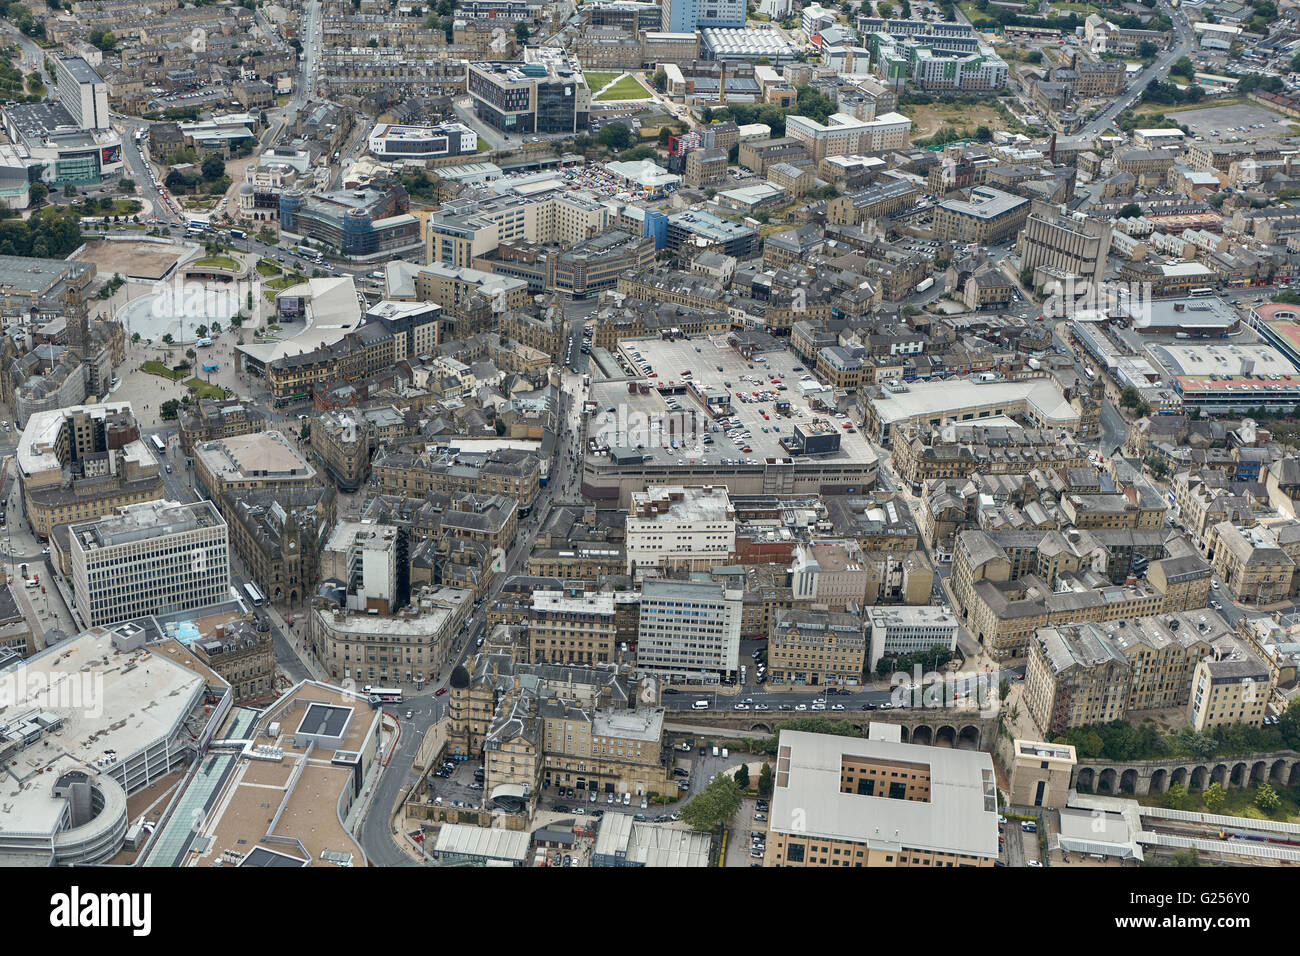 An aerial view of Bradford city centre, West Yorkshire - Stock Image